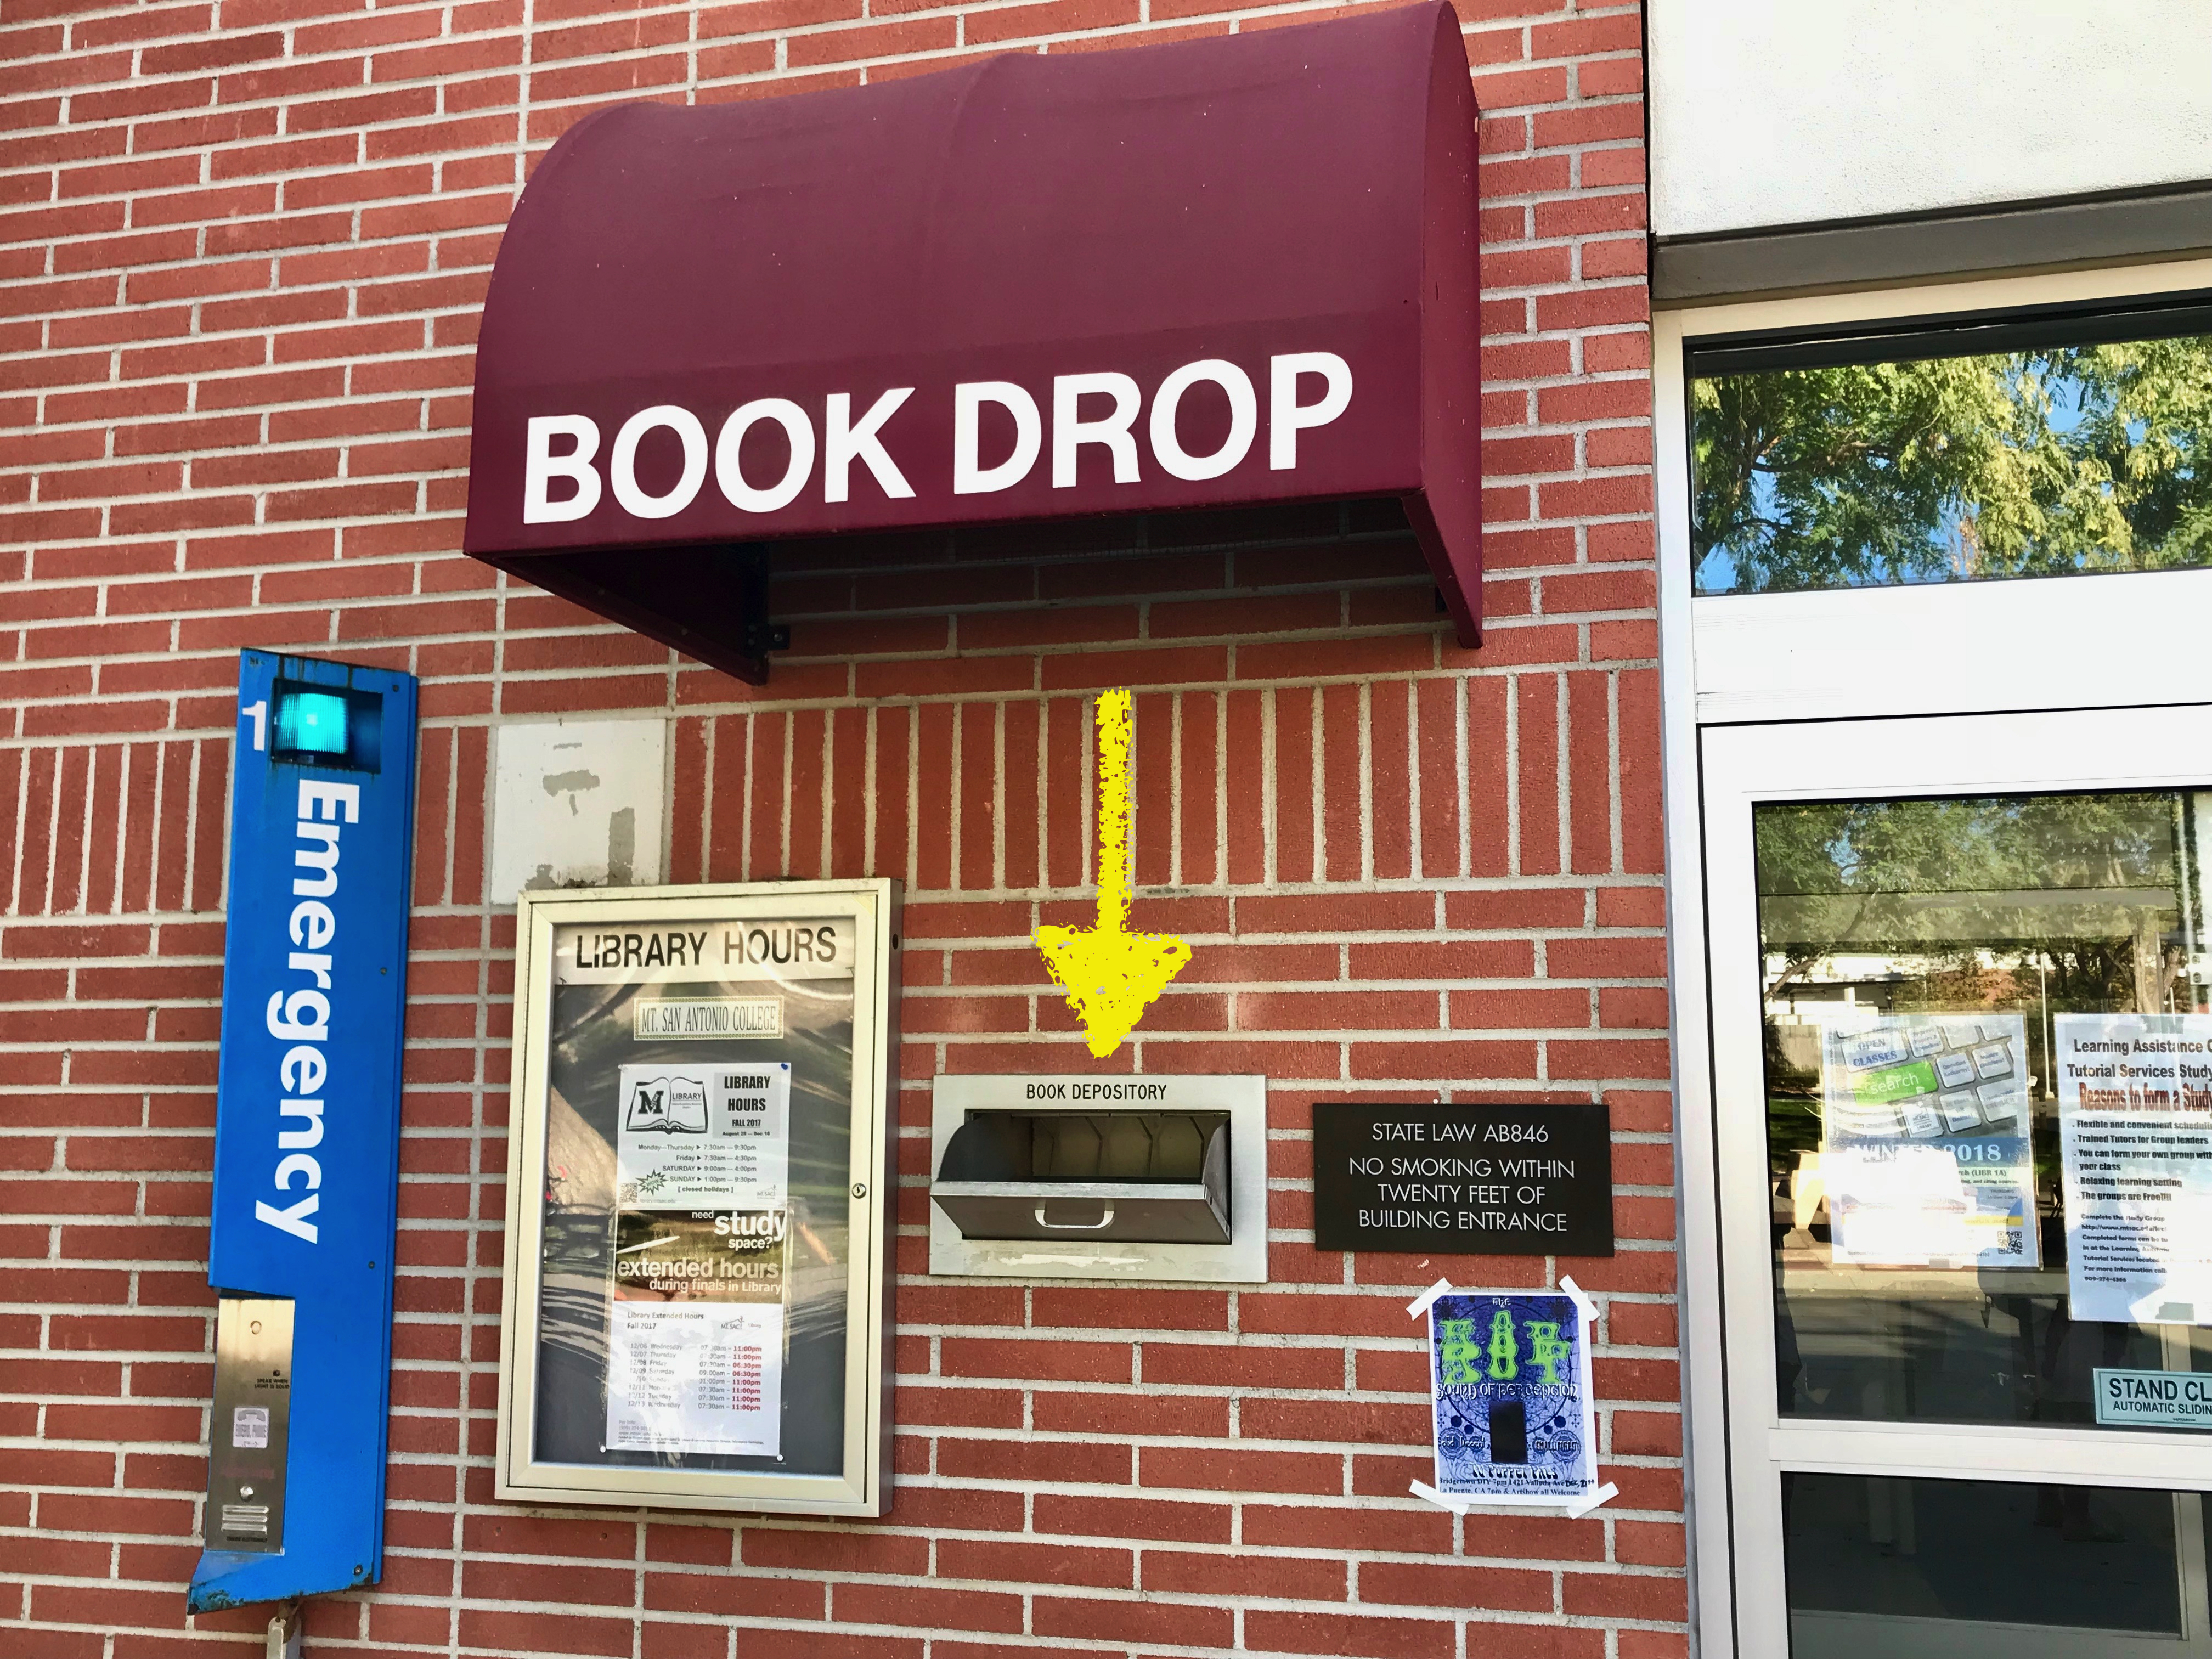 Bookdrop by the library entrance